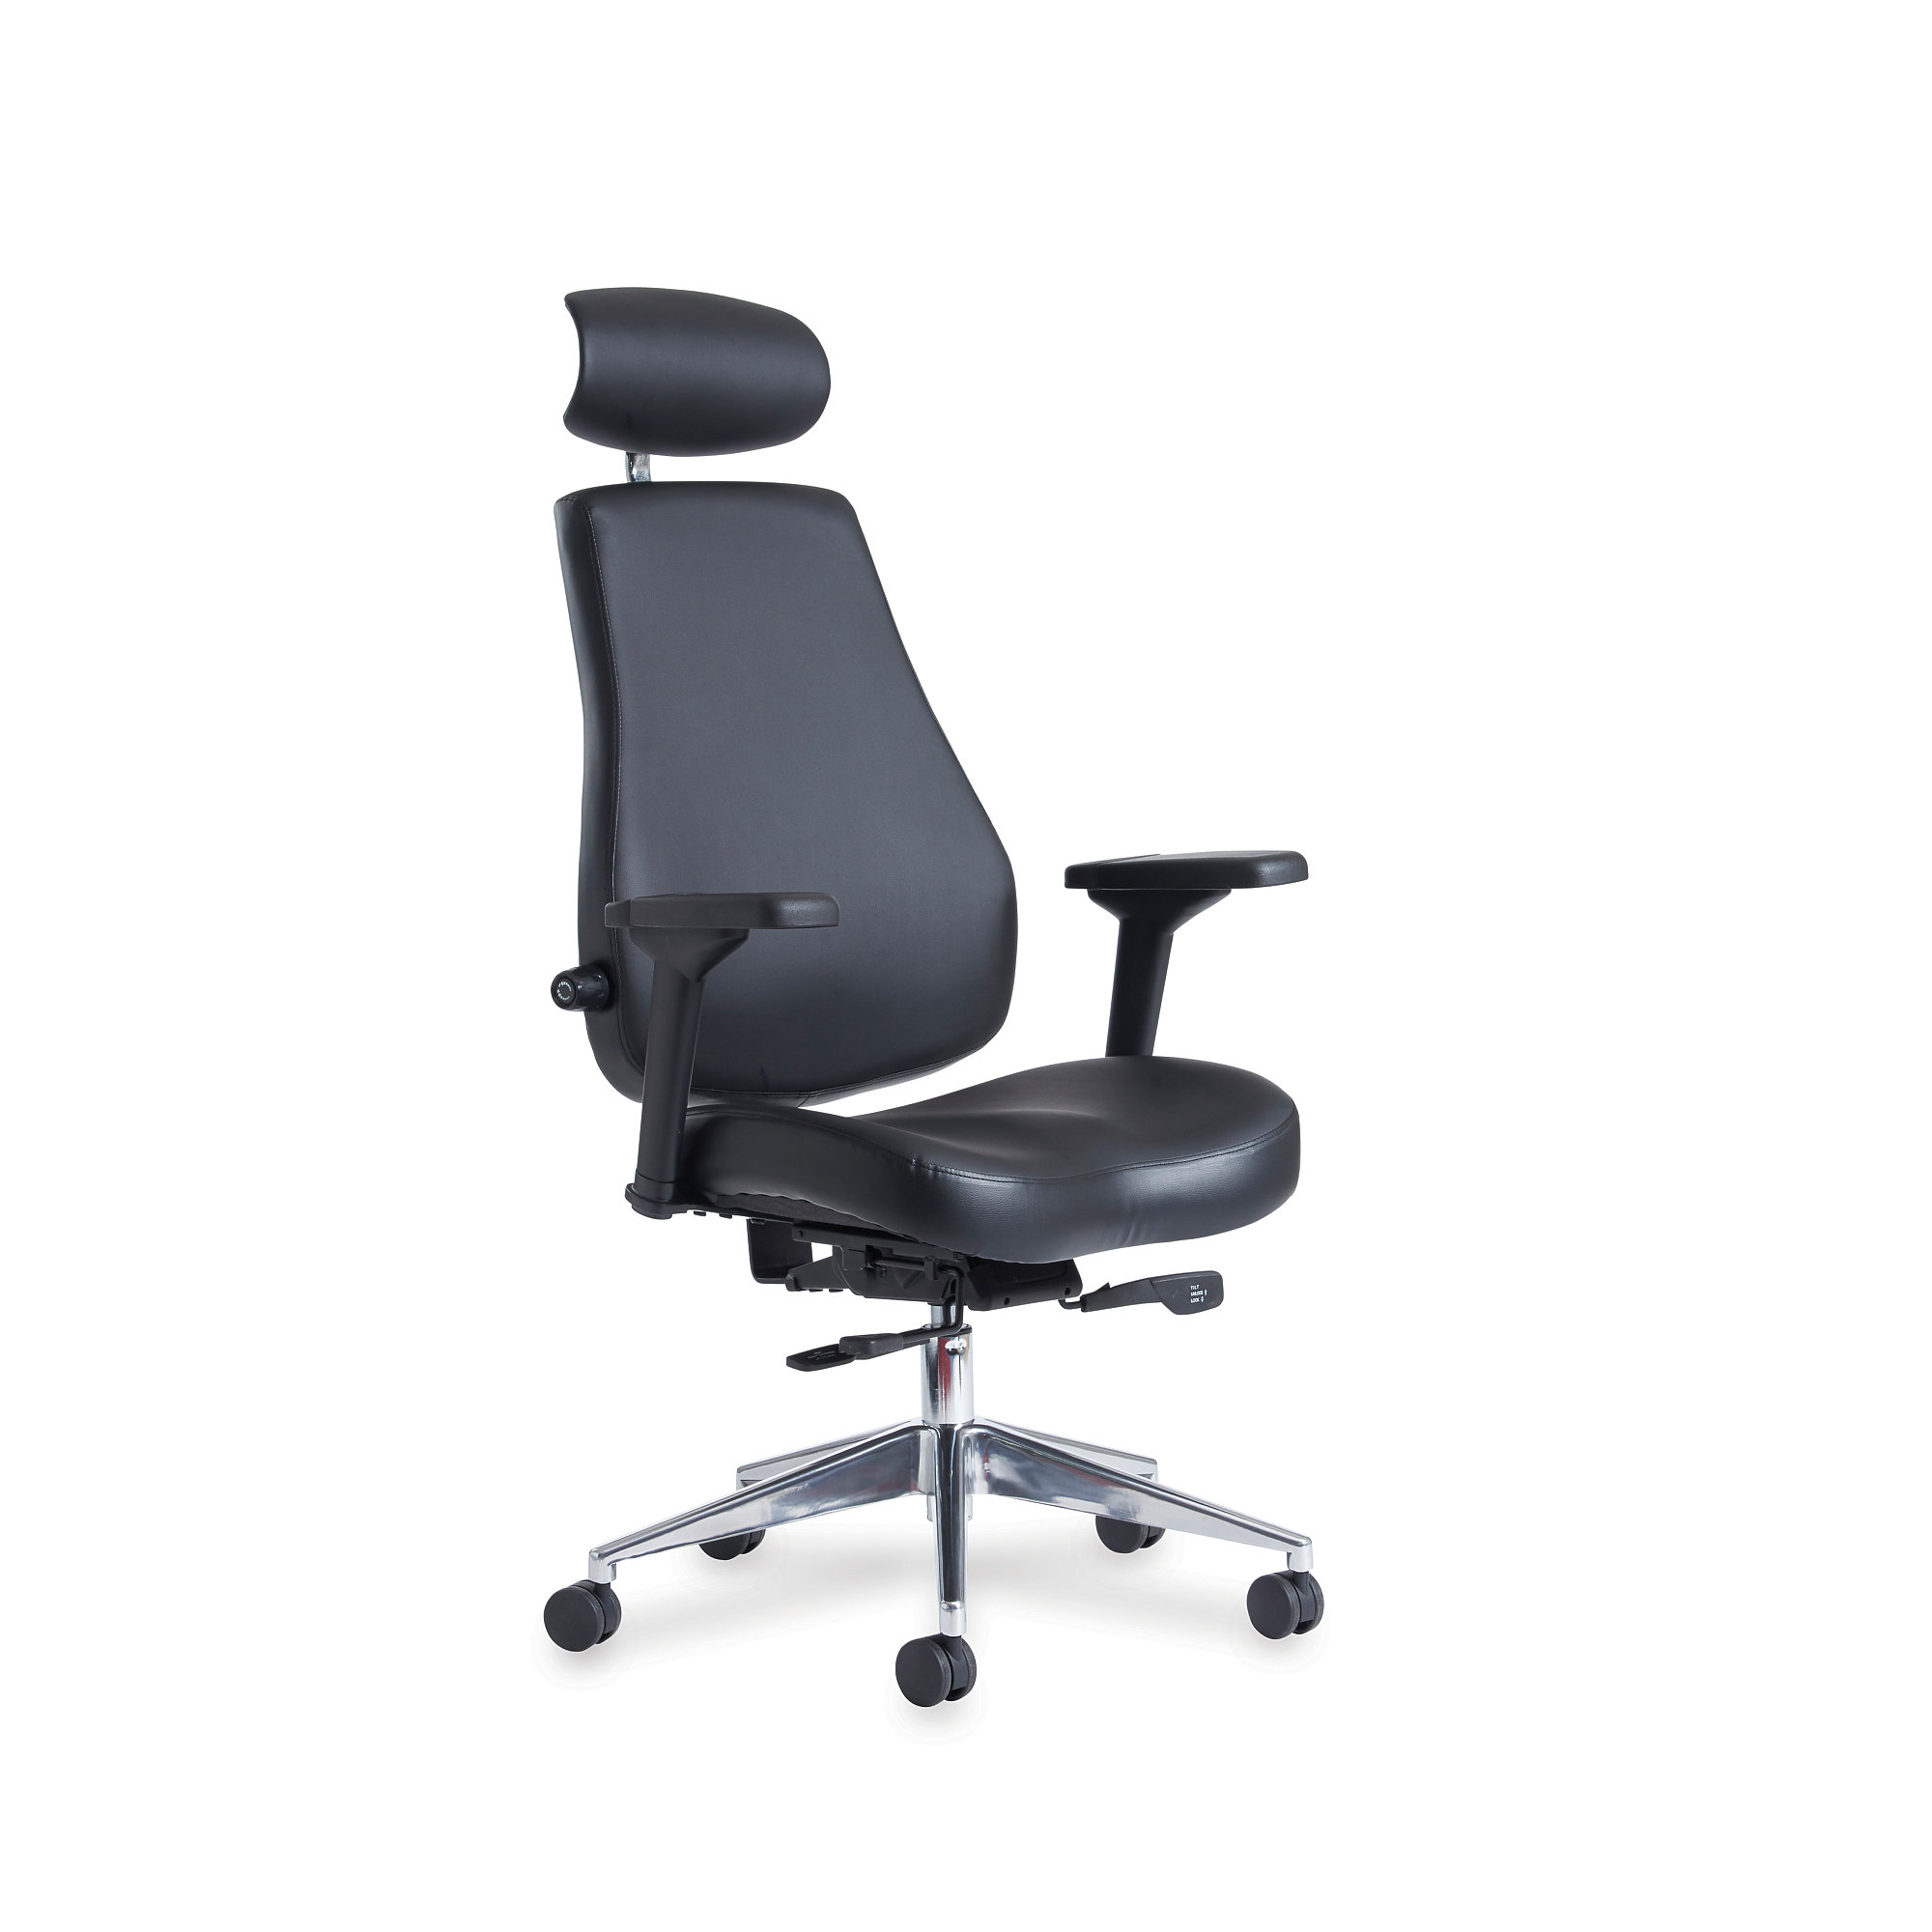 24 Hour Office Chairs 24 Hour Office Chair Fernhurst Black Faux Leather Aj Products Online